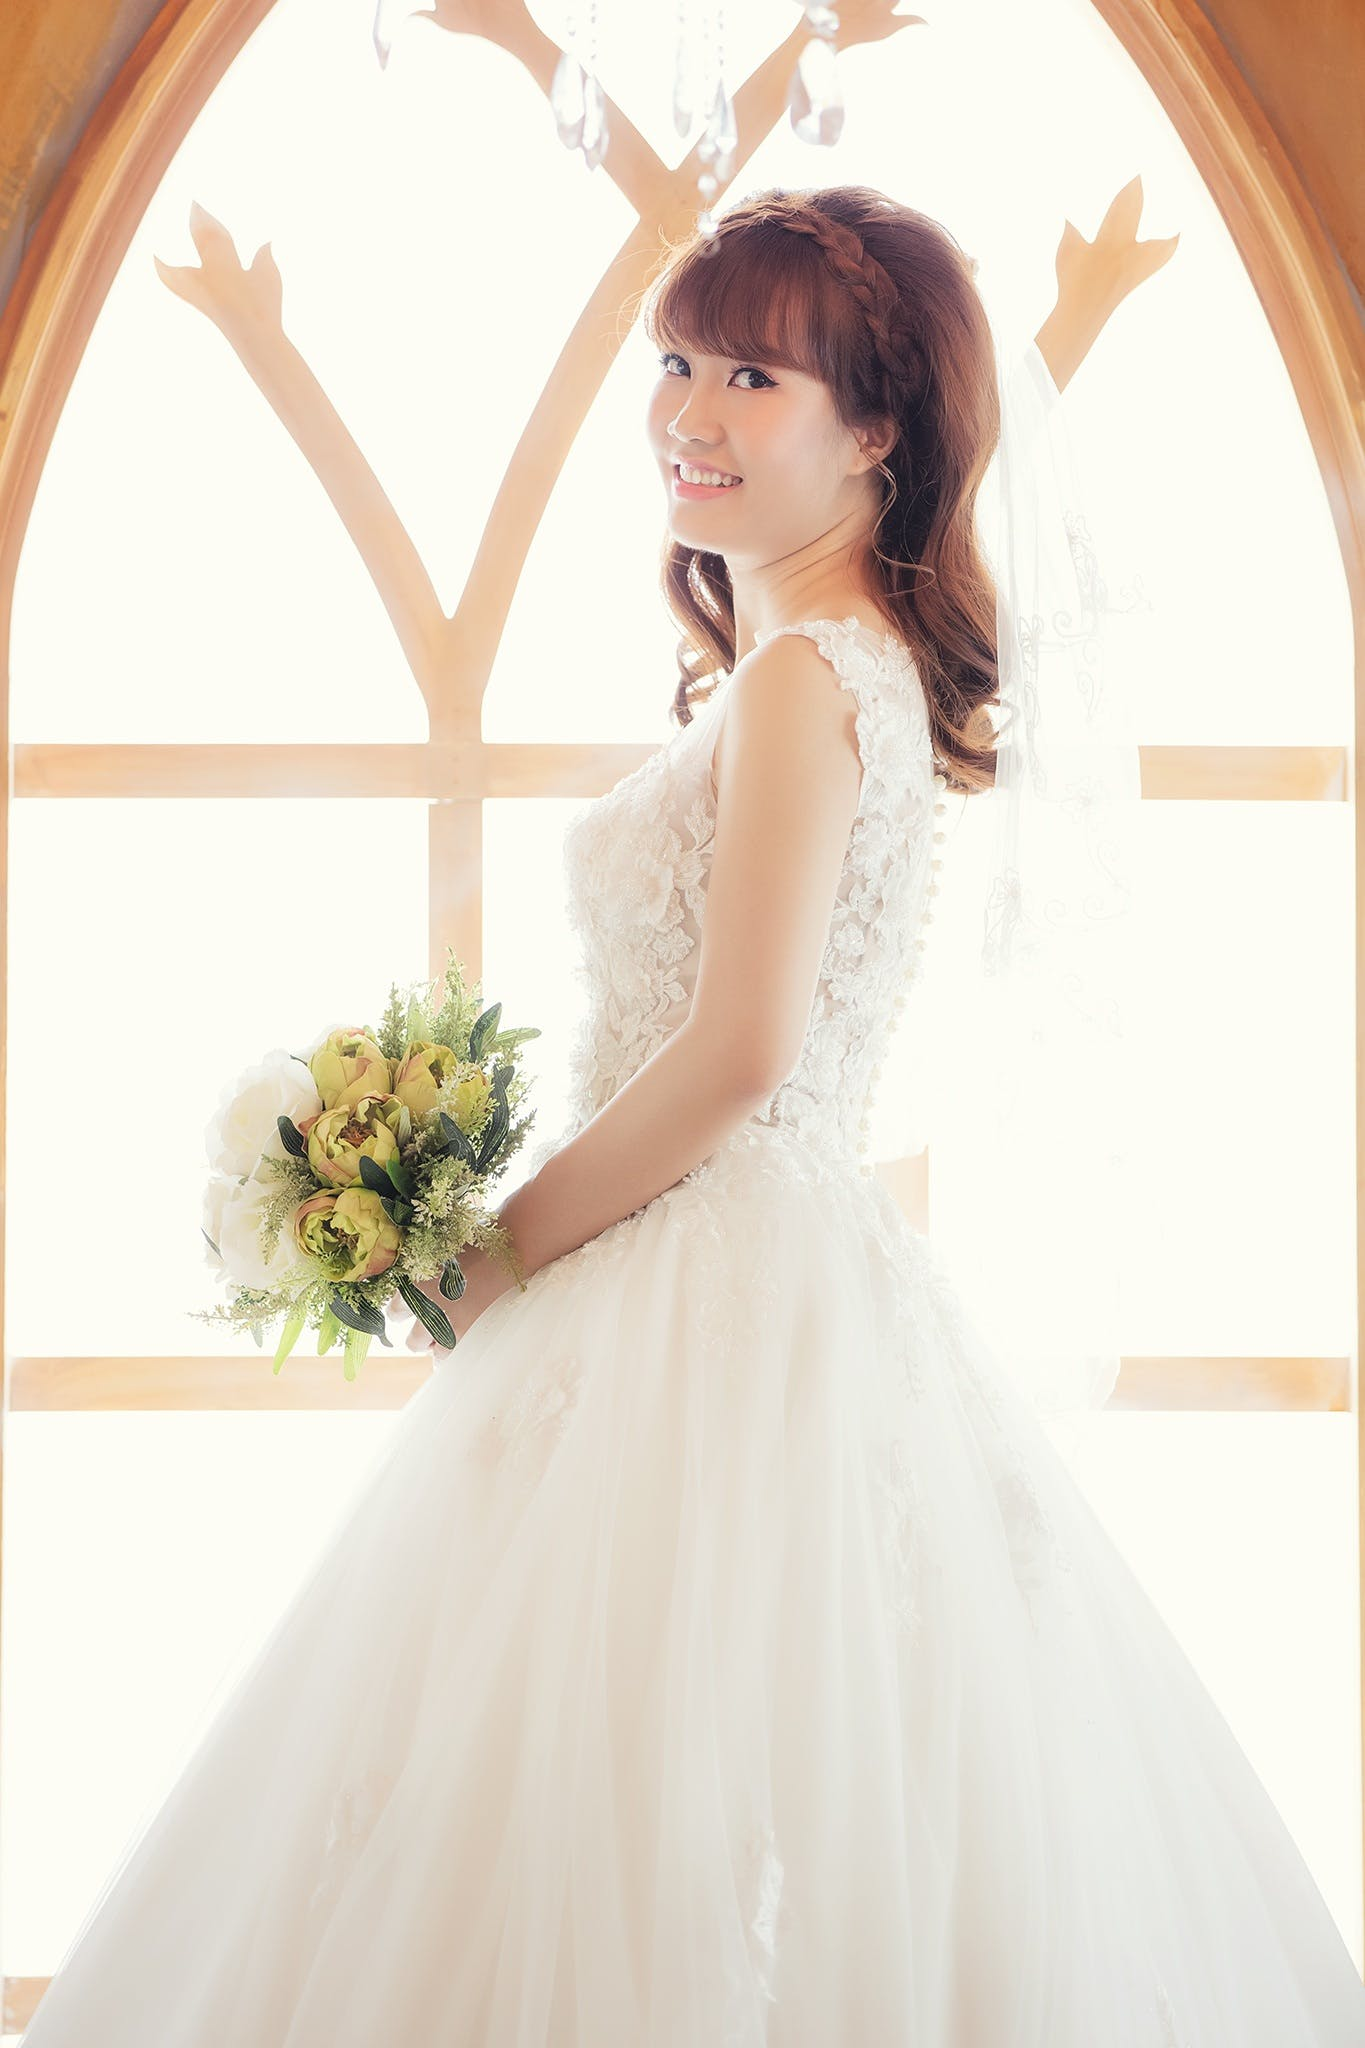 Woman Wearing White Wedding Gown Holding Bouquet of Yellow Flowers